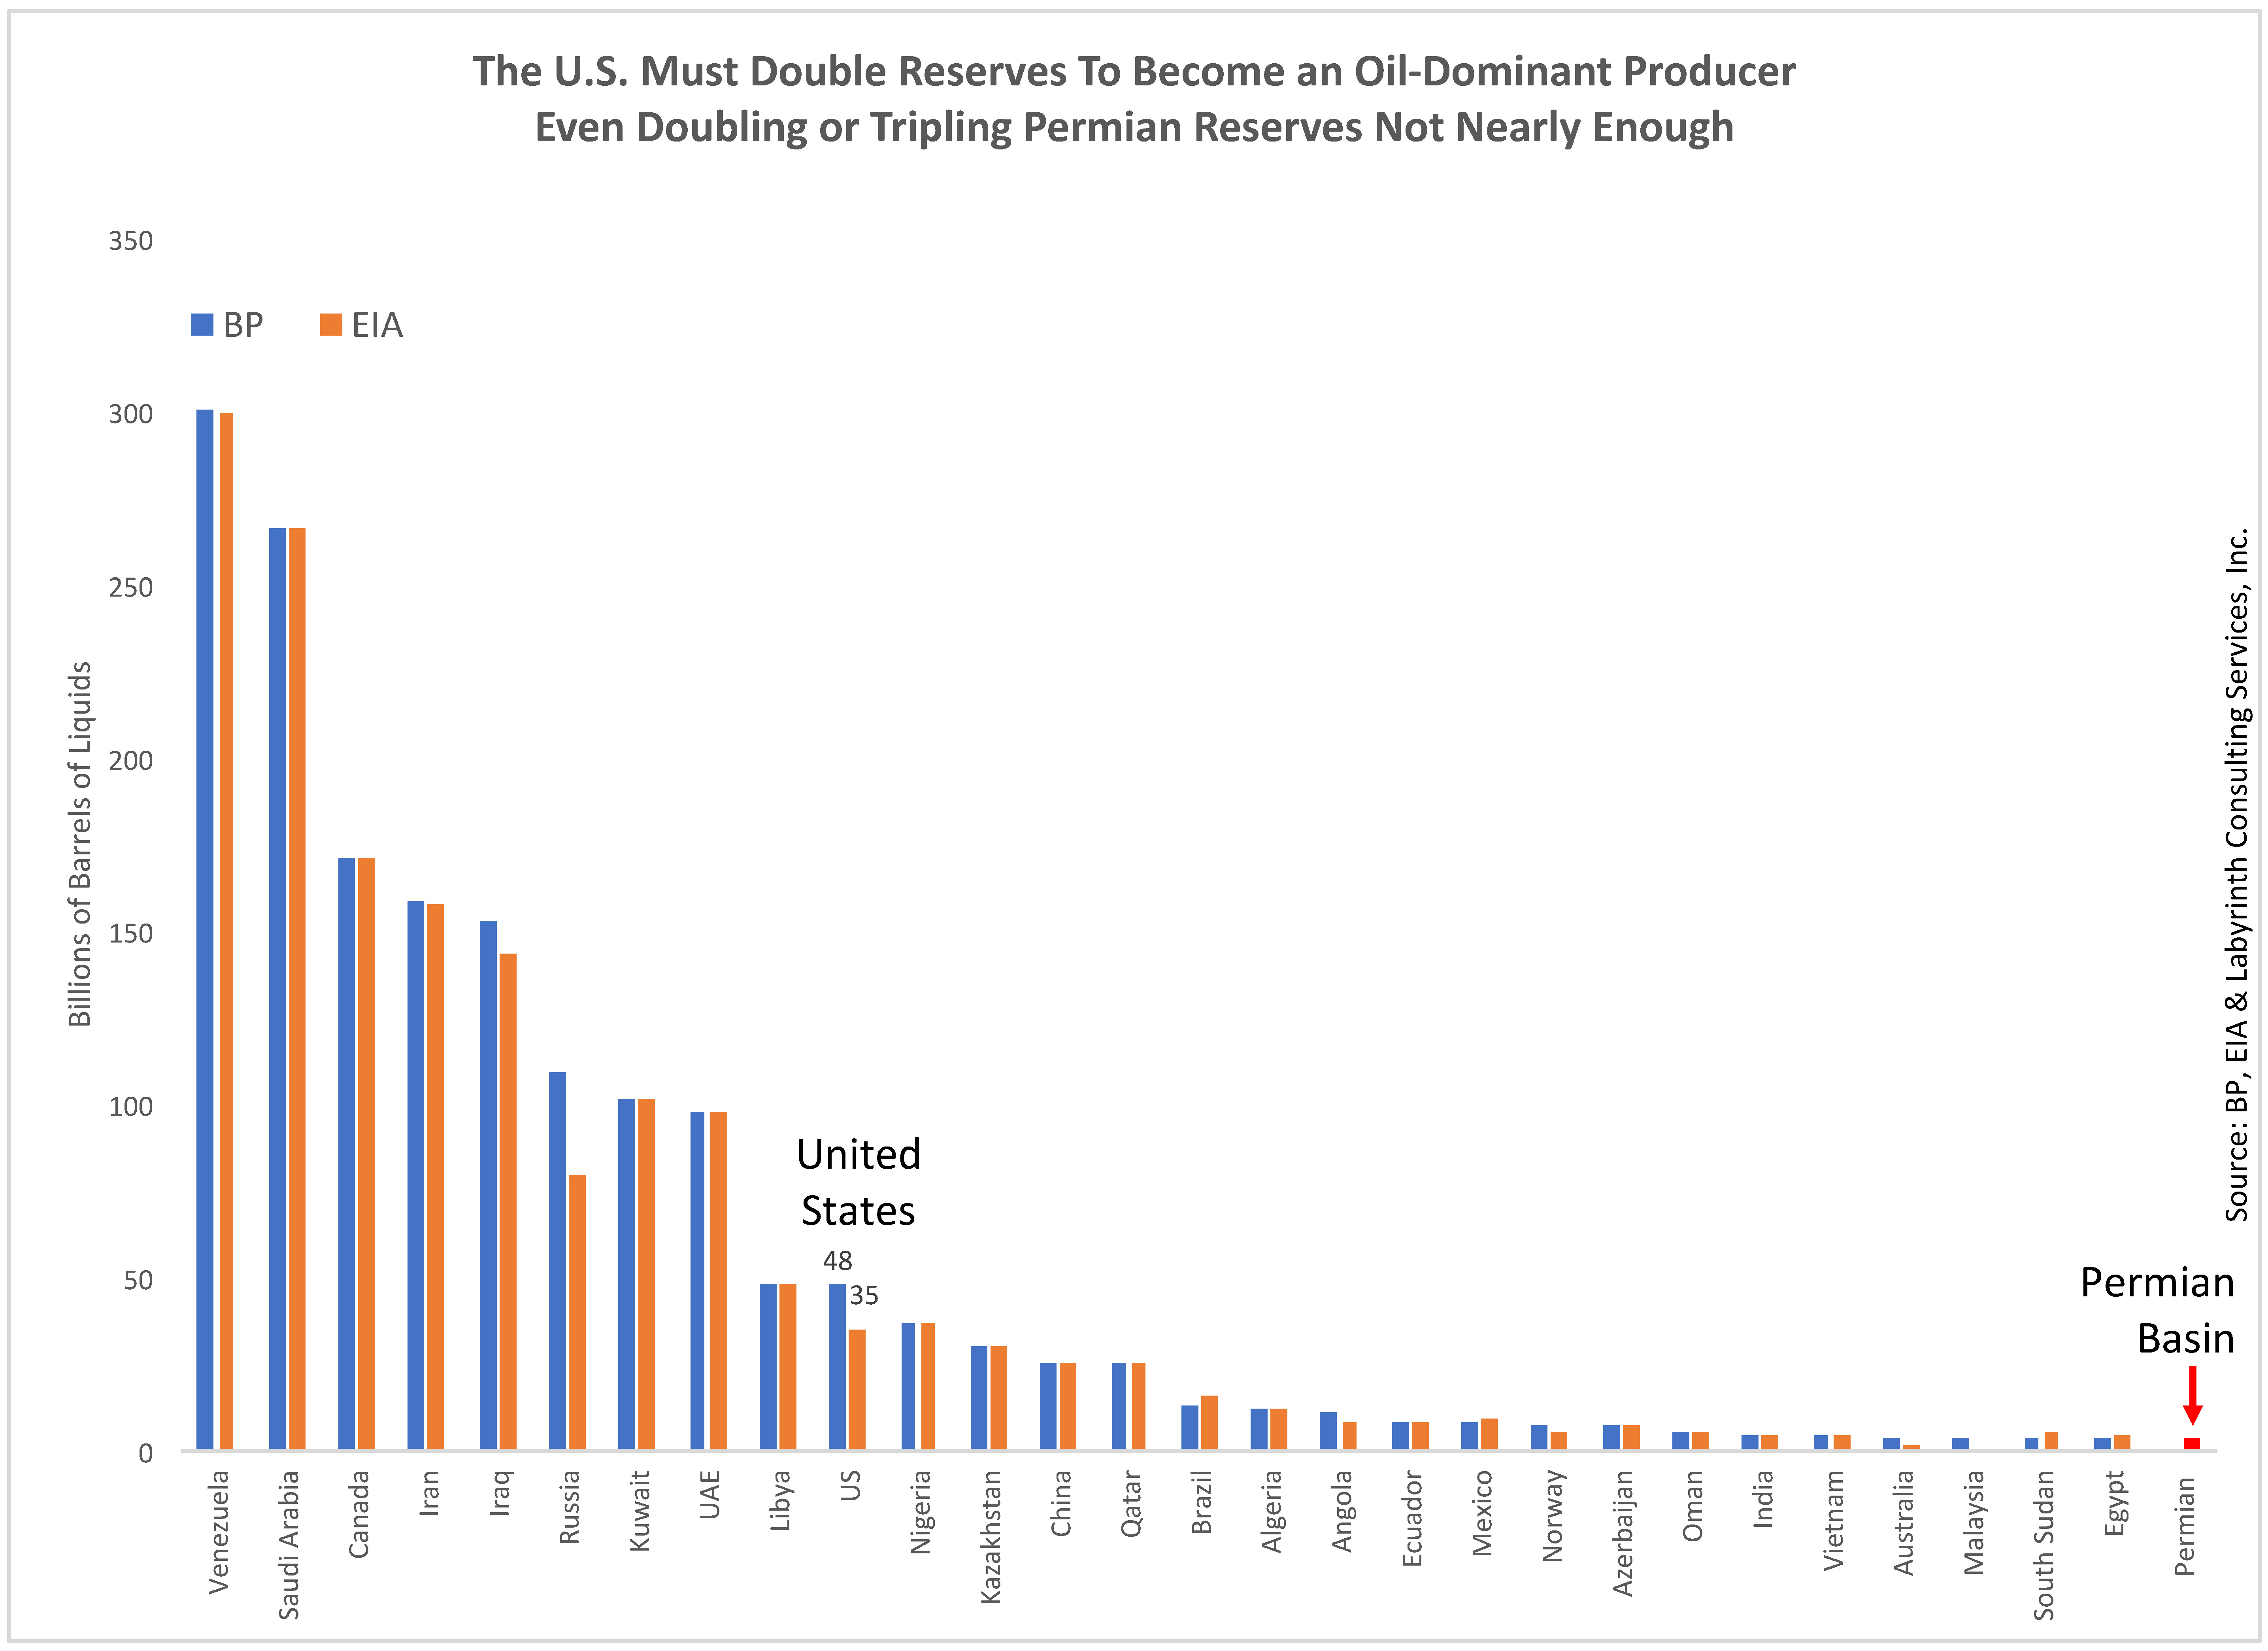 Permian Oil Reserves Are Grossly Exaggerated